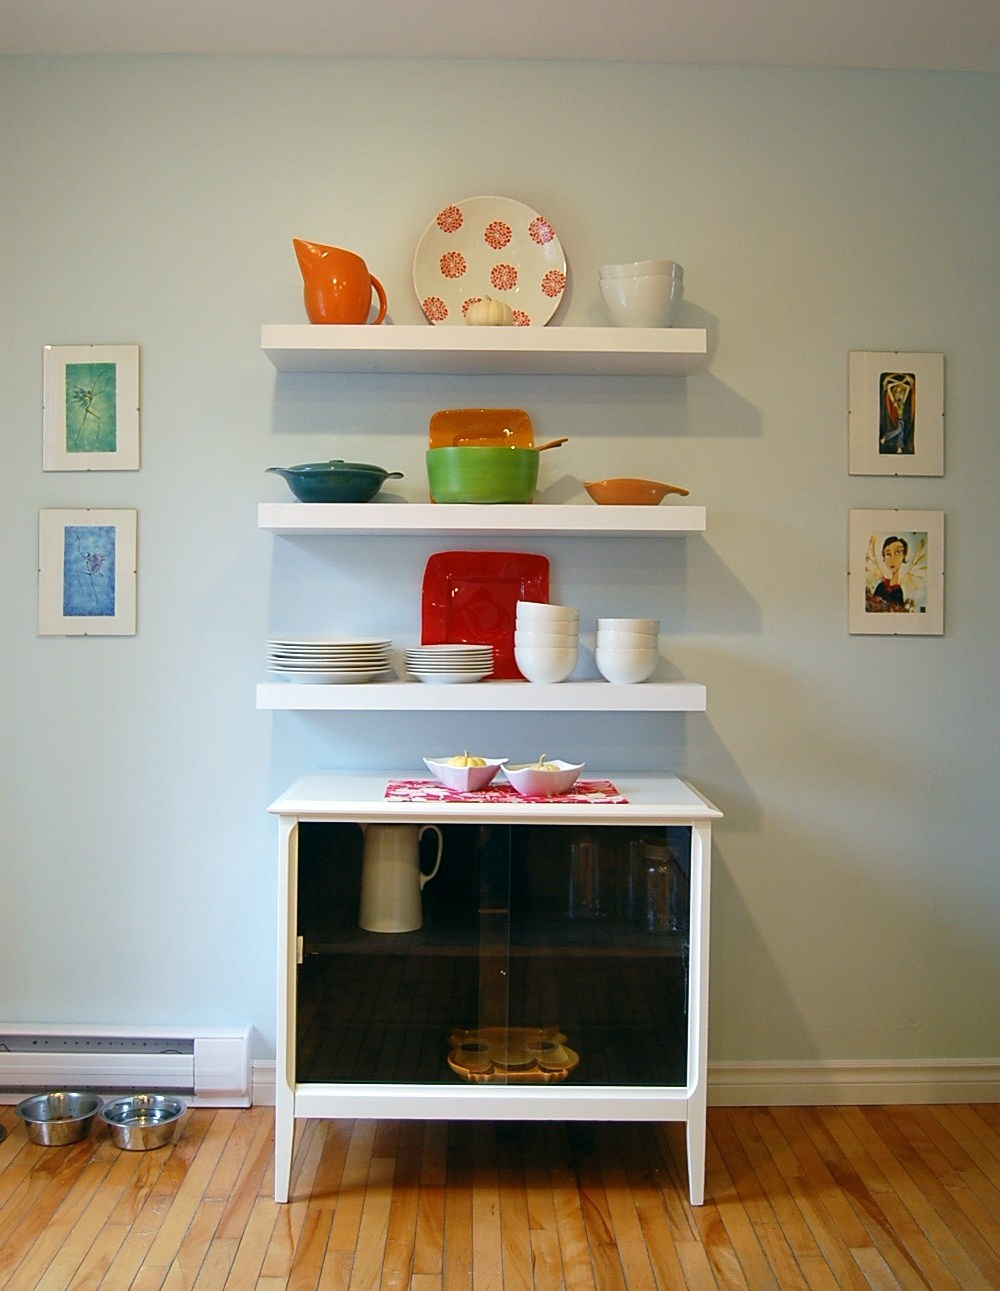 Shelves for kitchen cabinets Photo - 6